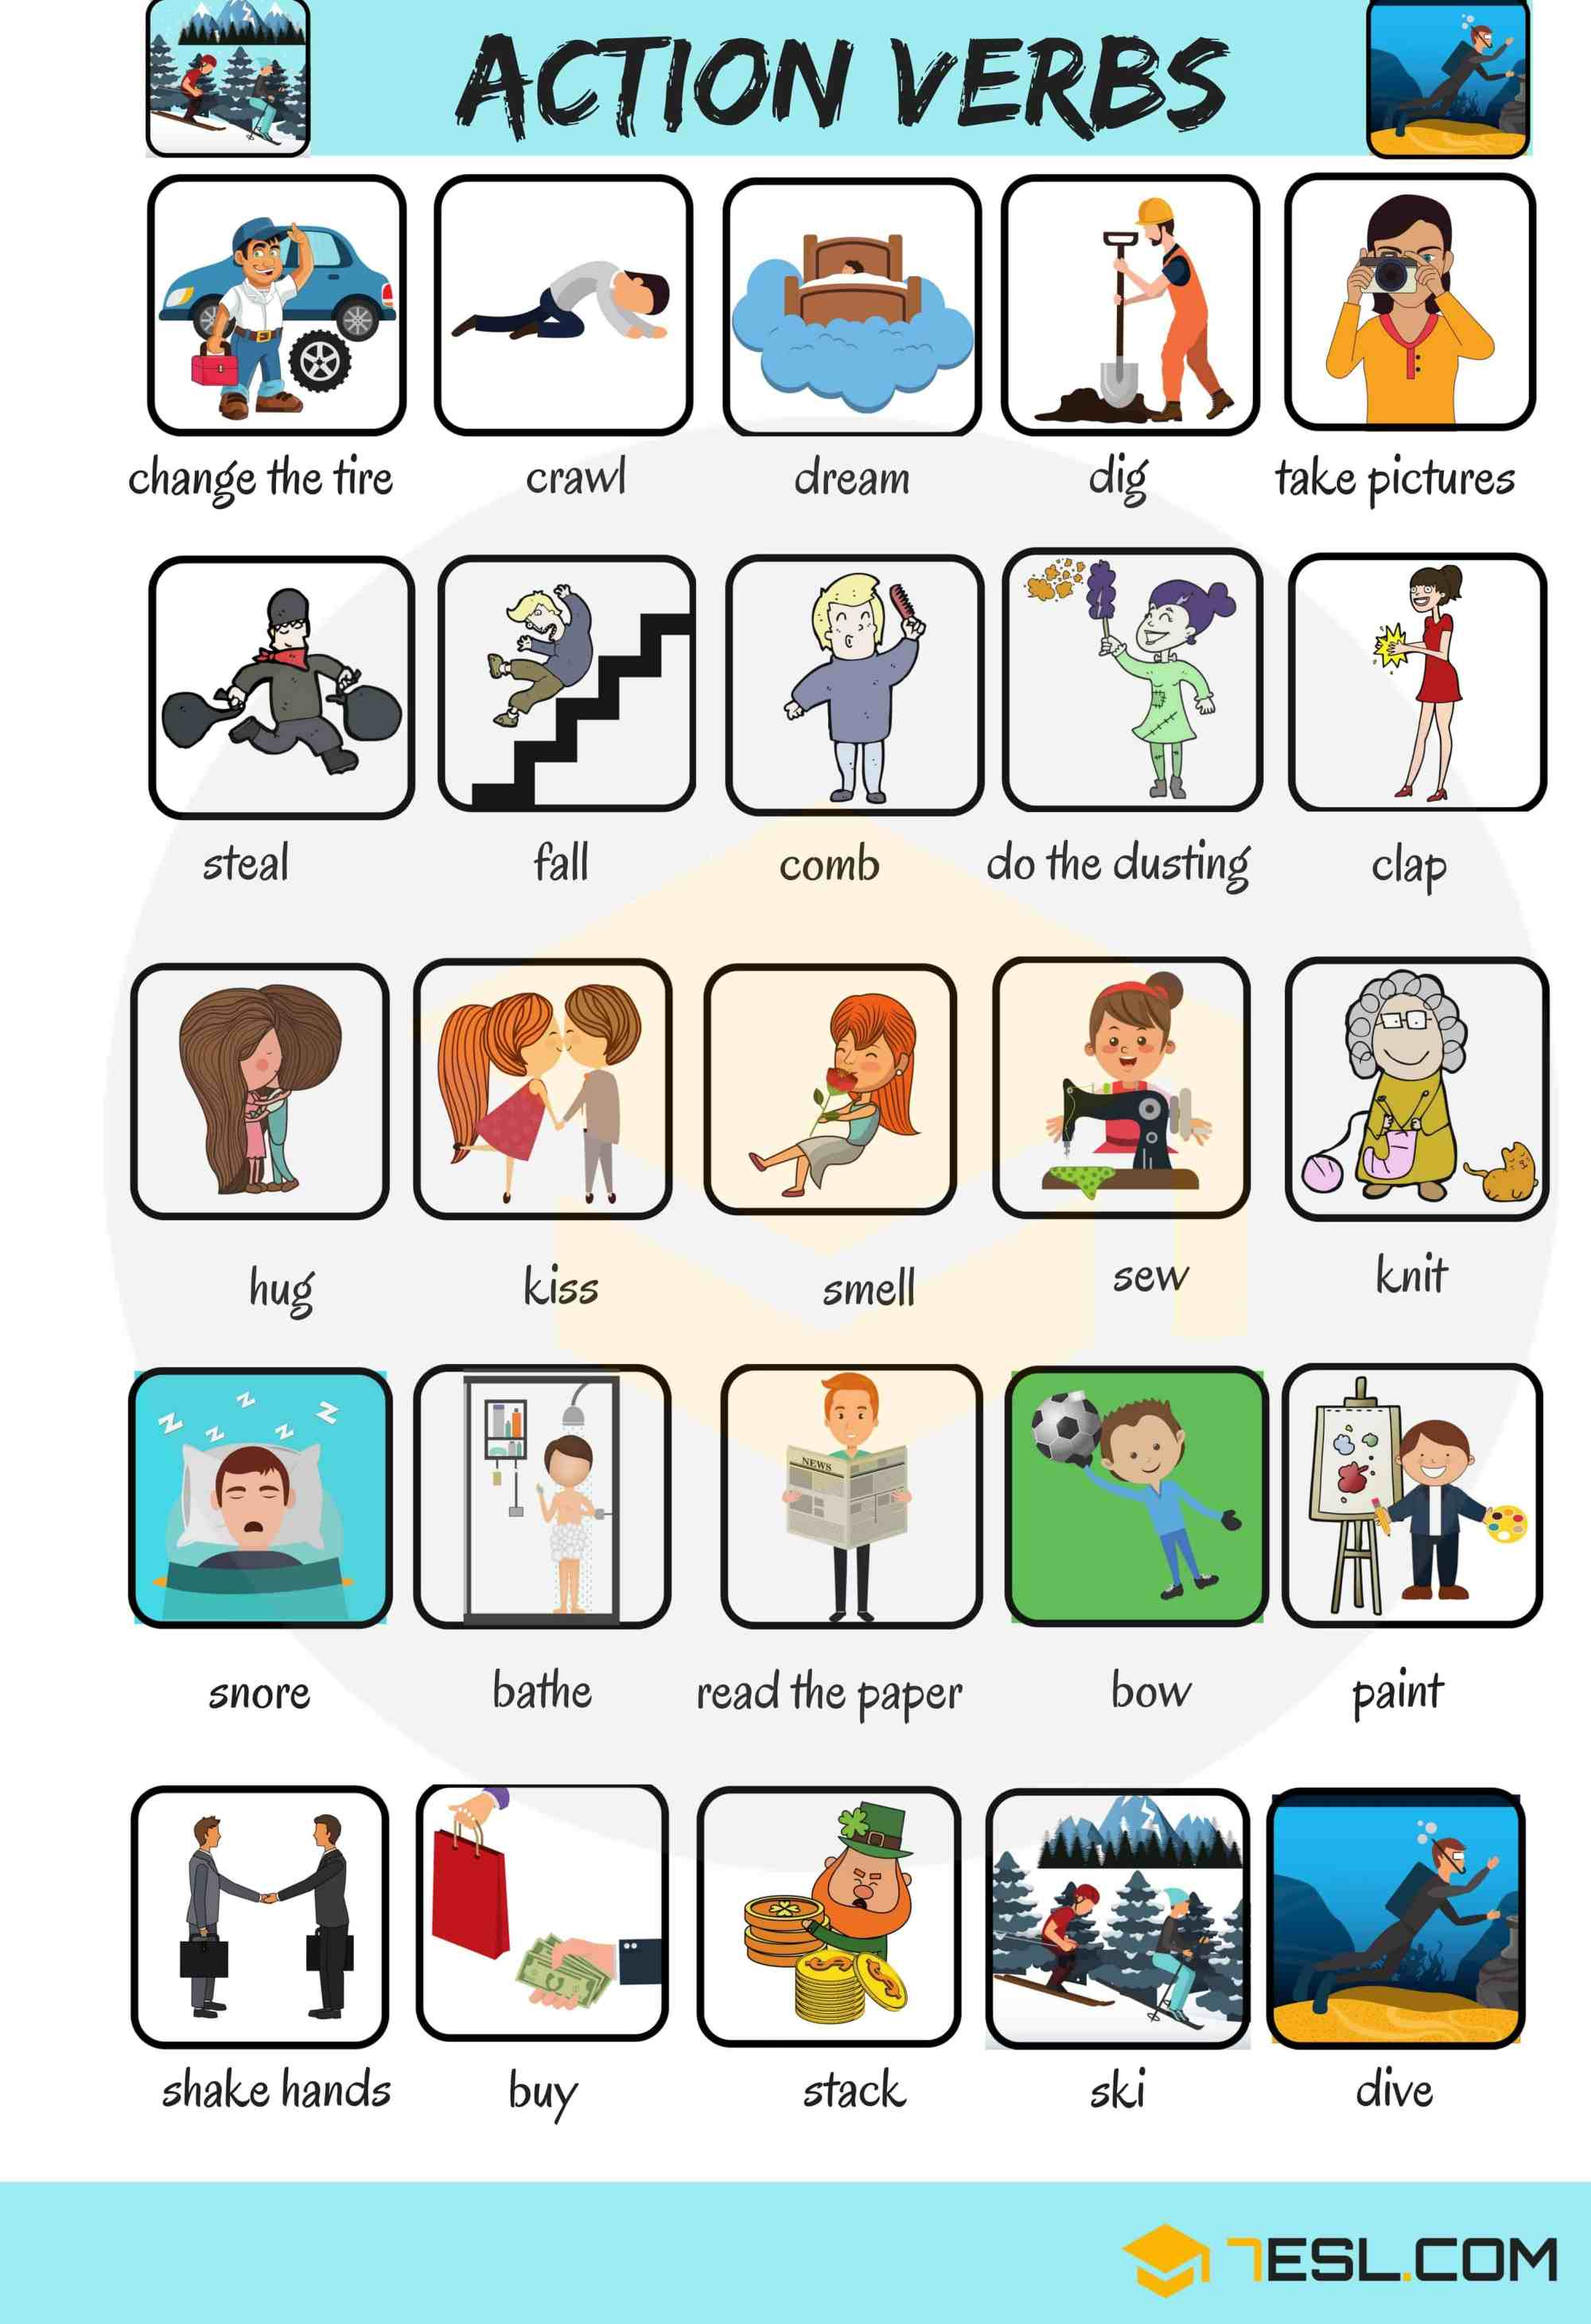 hight resolution of Action Verbs: List of 50 Common Action Verbs with Pictures • 7ESL